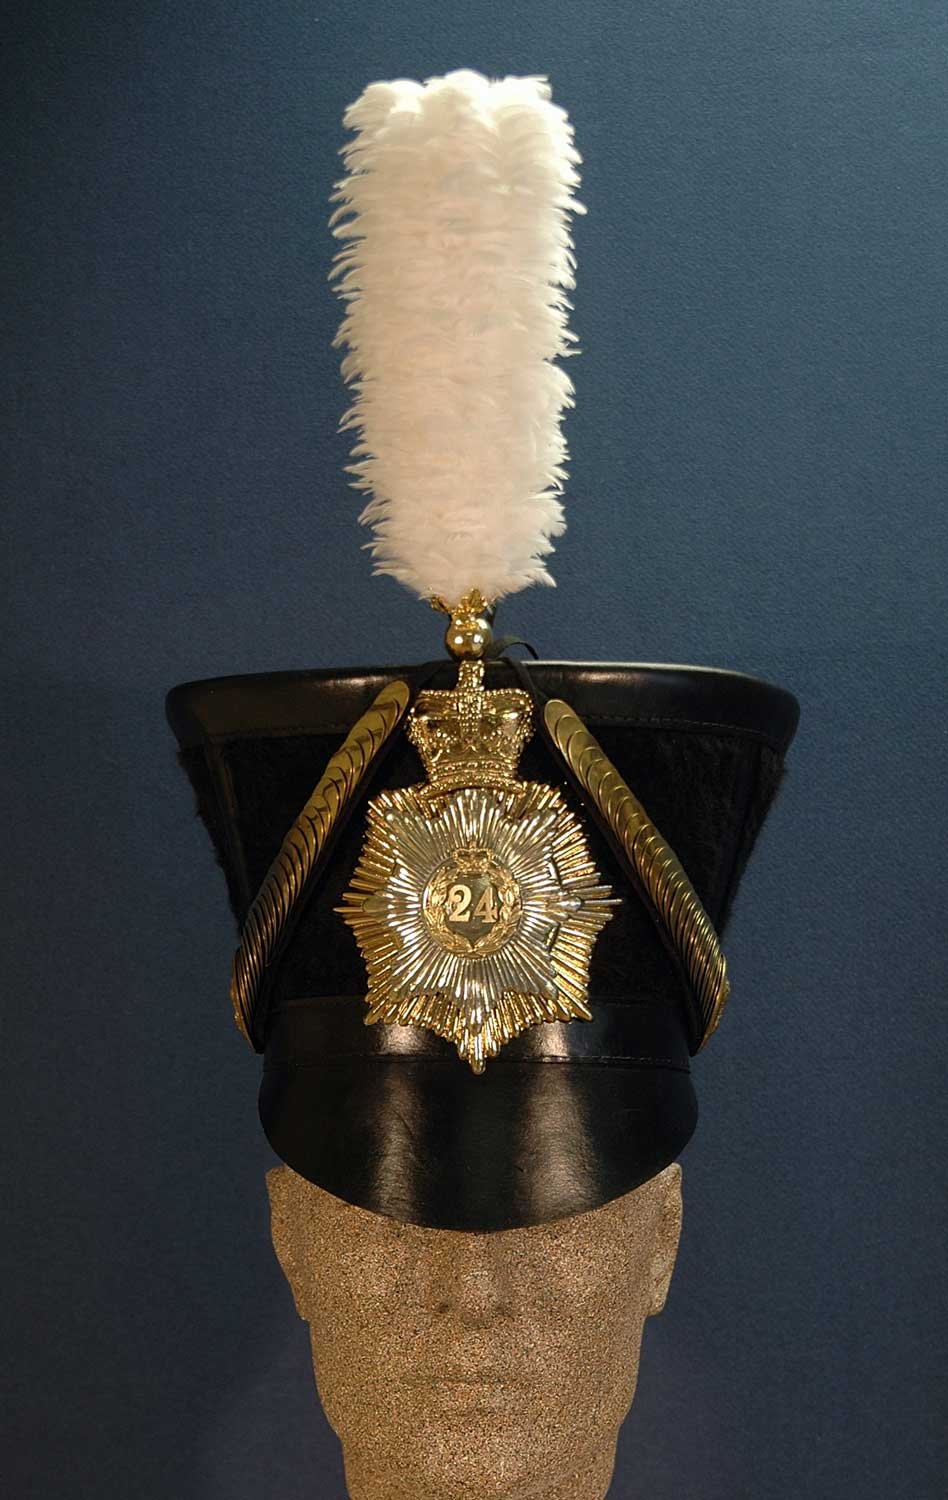 British, 24th Regt of Foot, Belltop Shako, Officer